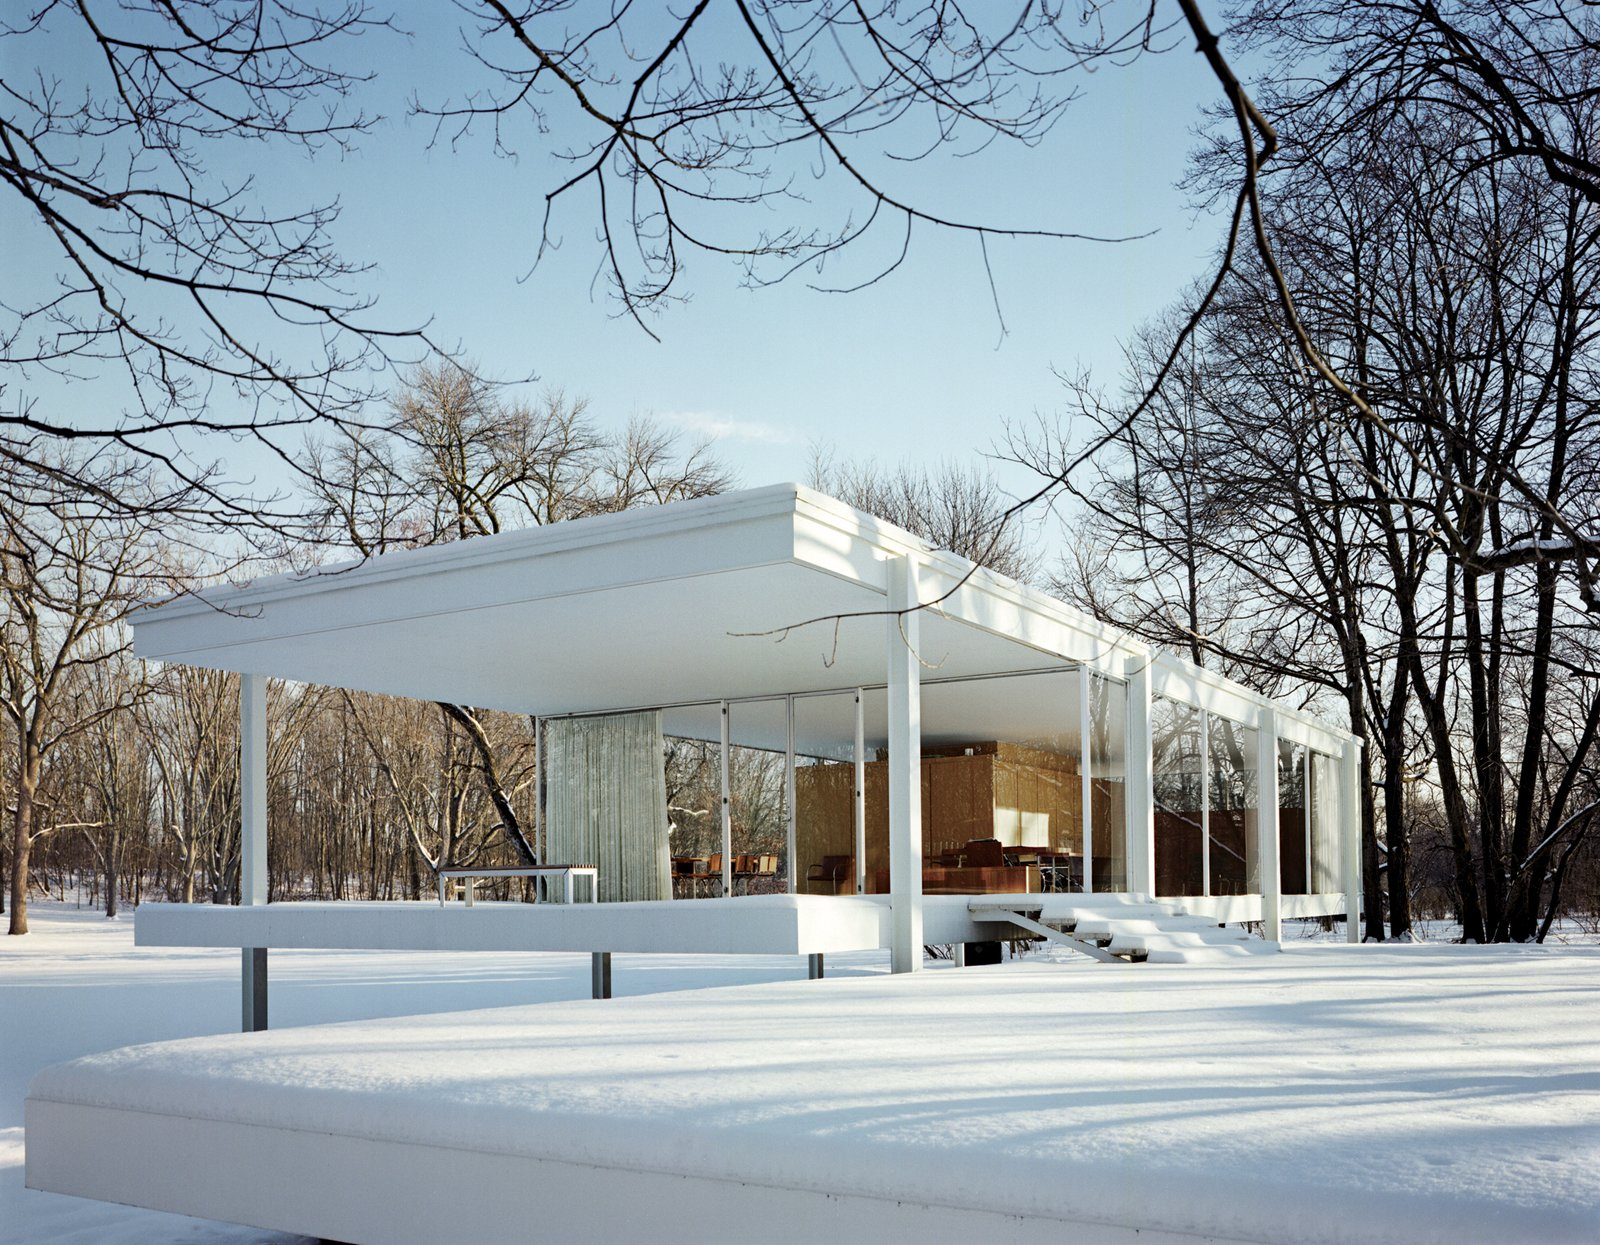 Exterior, Cabin Building Type, House Building Type, Metal Siding Material, Flat RoofLine, Glass Siding Material, and Mid-Century Building Type Here's the cover image in all its glory. Van der Rohe's Farnsworth House is the essential glass house (sorry Philip J) and looks pretty spectacular in the snow. One wonders if those windows are double-paned though. Photo by Jason Schmidt.  Best from Best Midcentury Homes in America